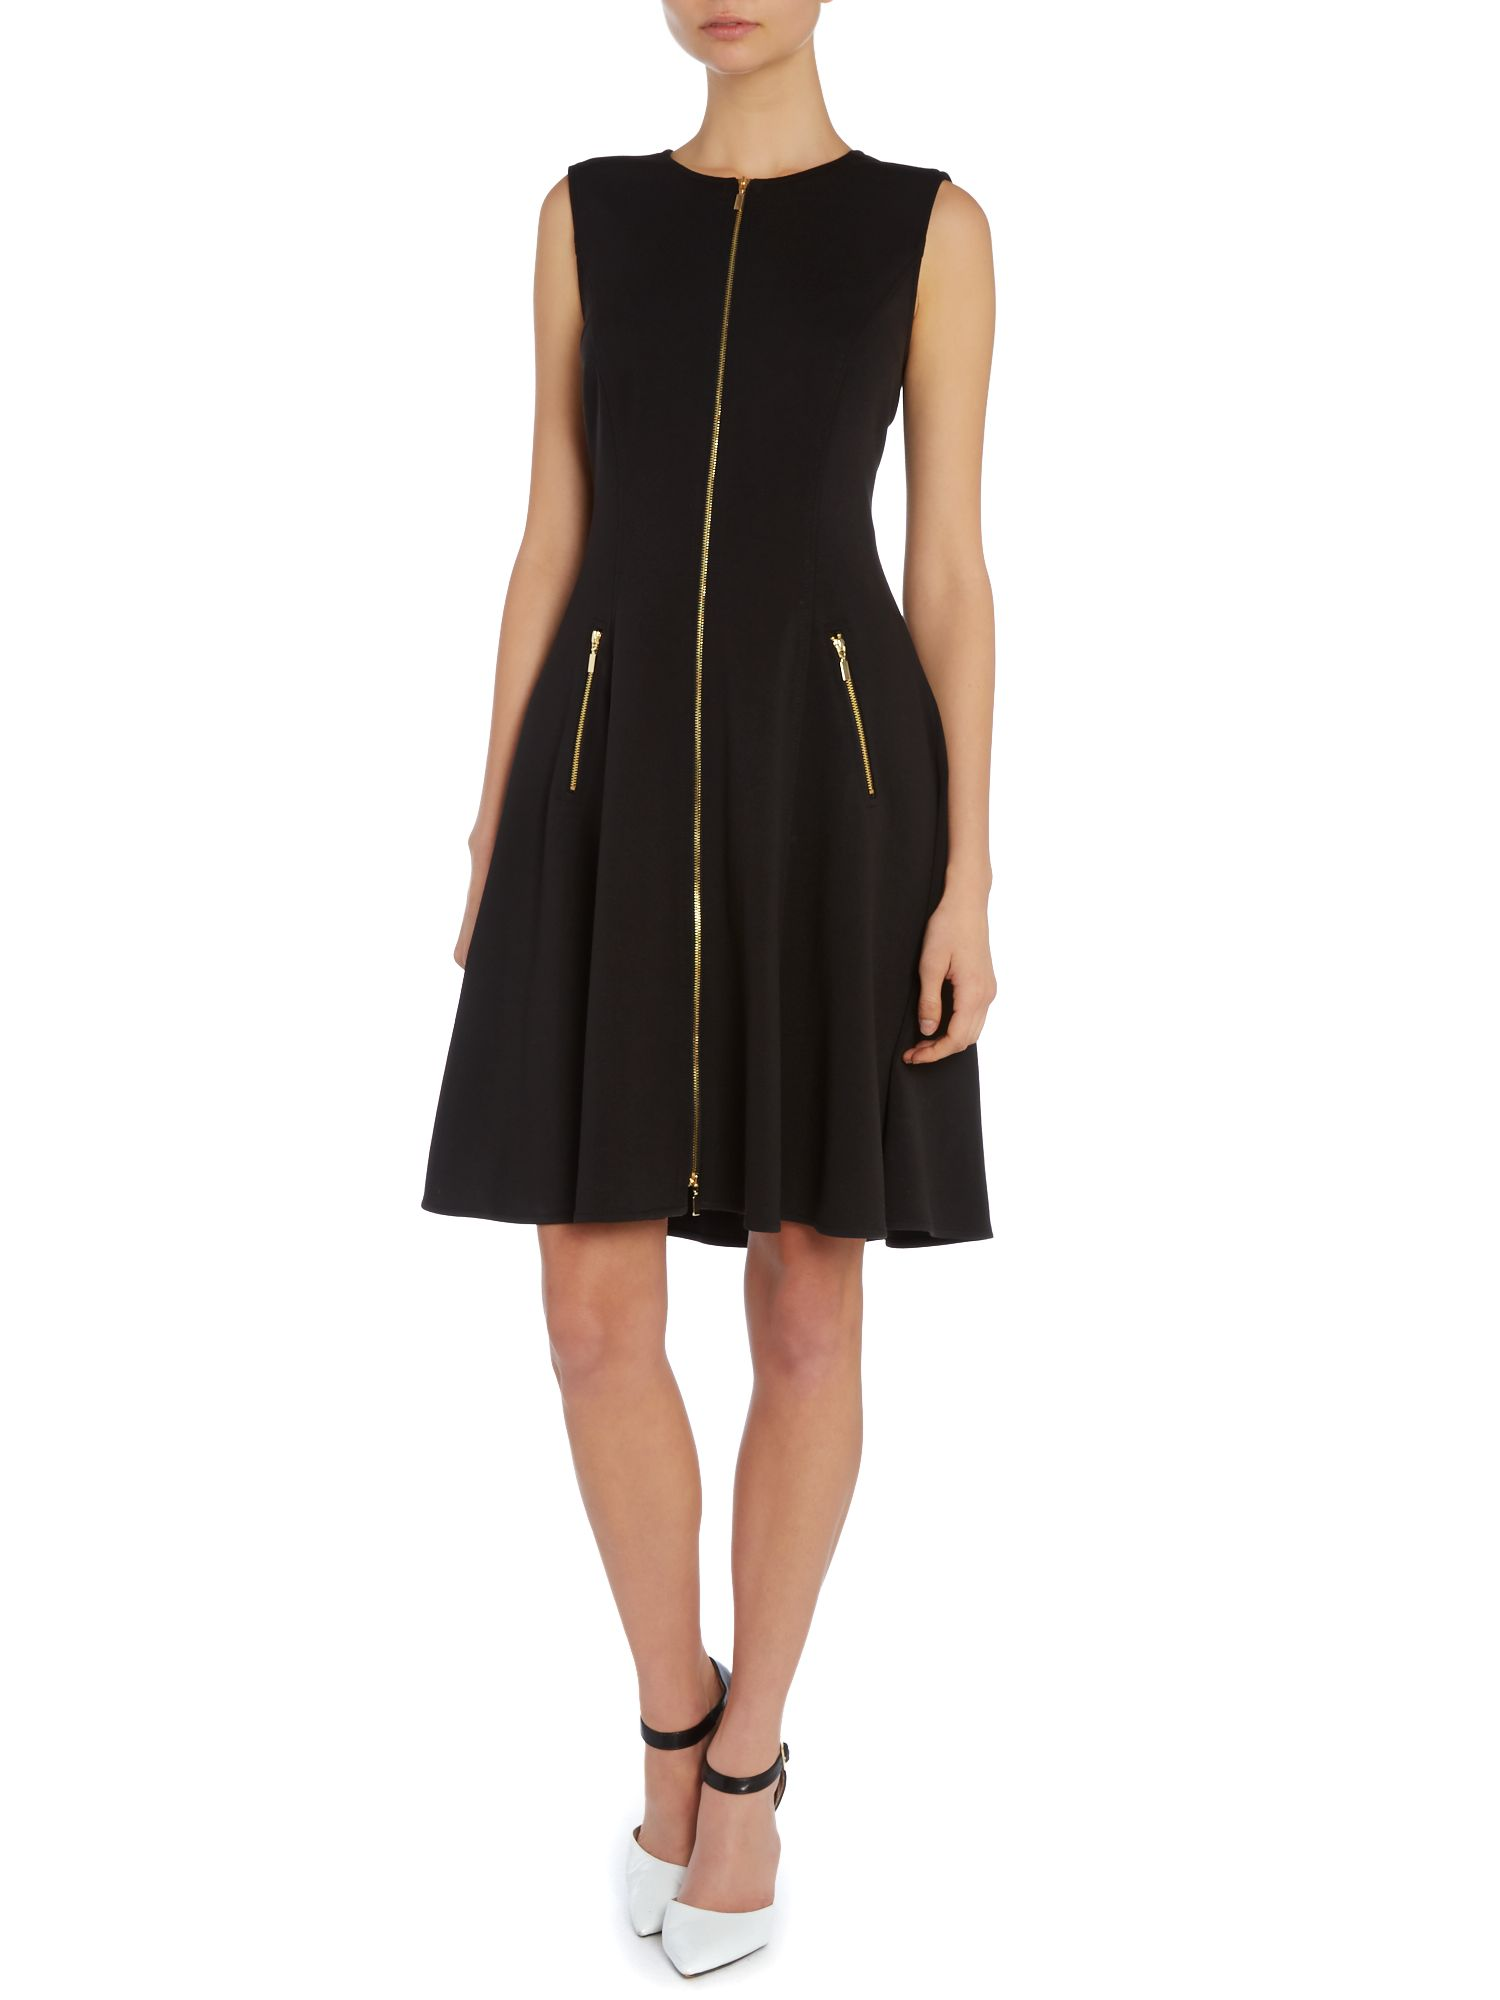 Fit and flare dress with zip detail